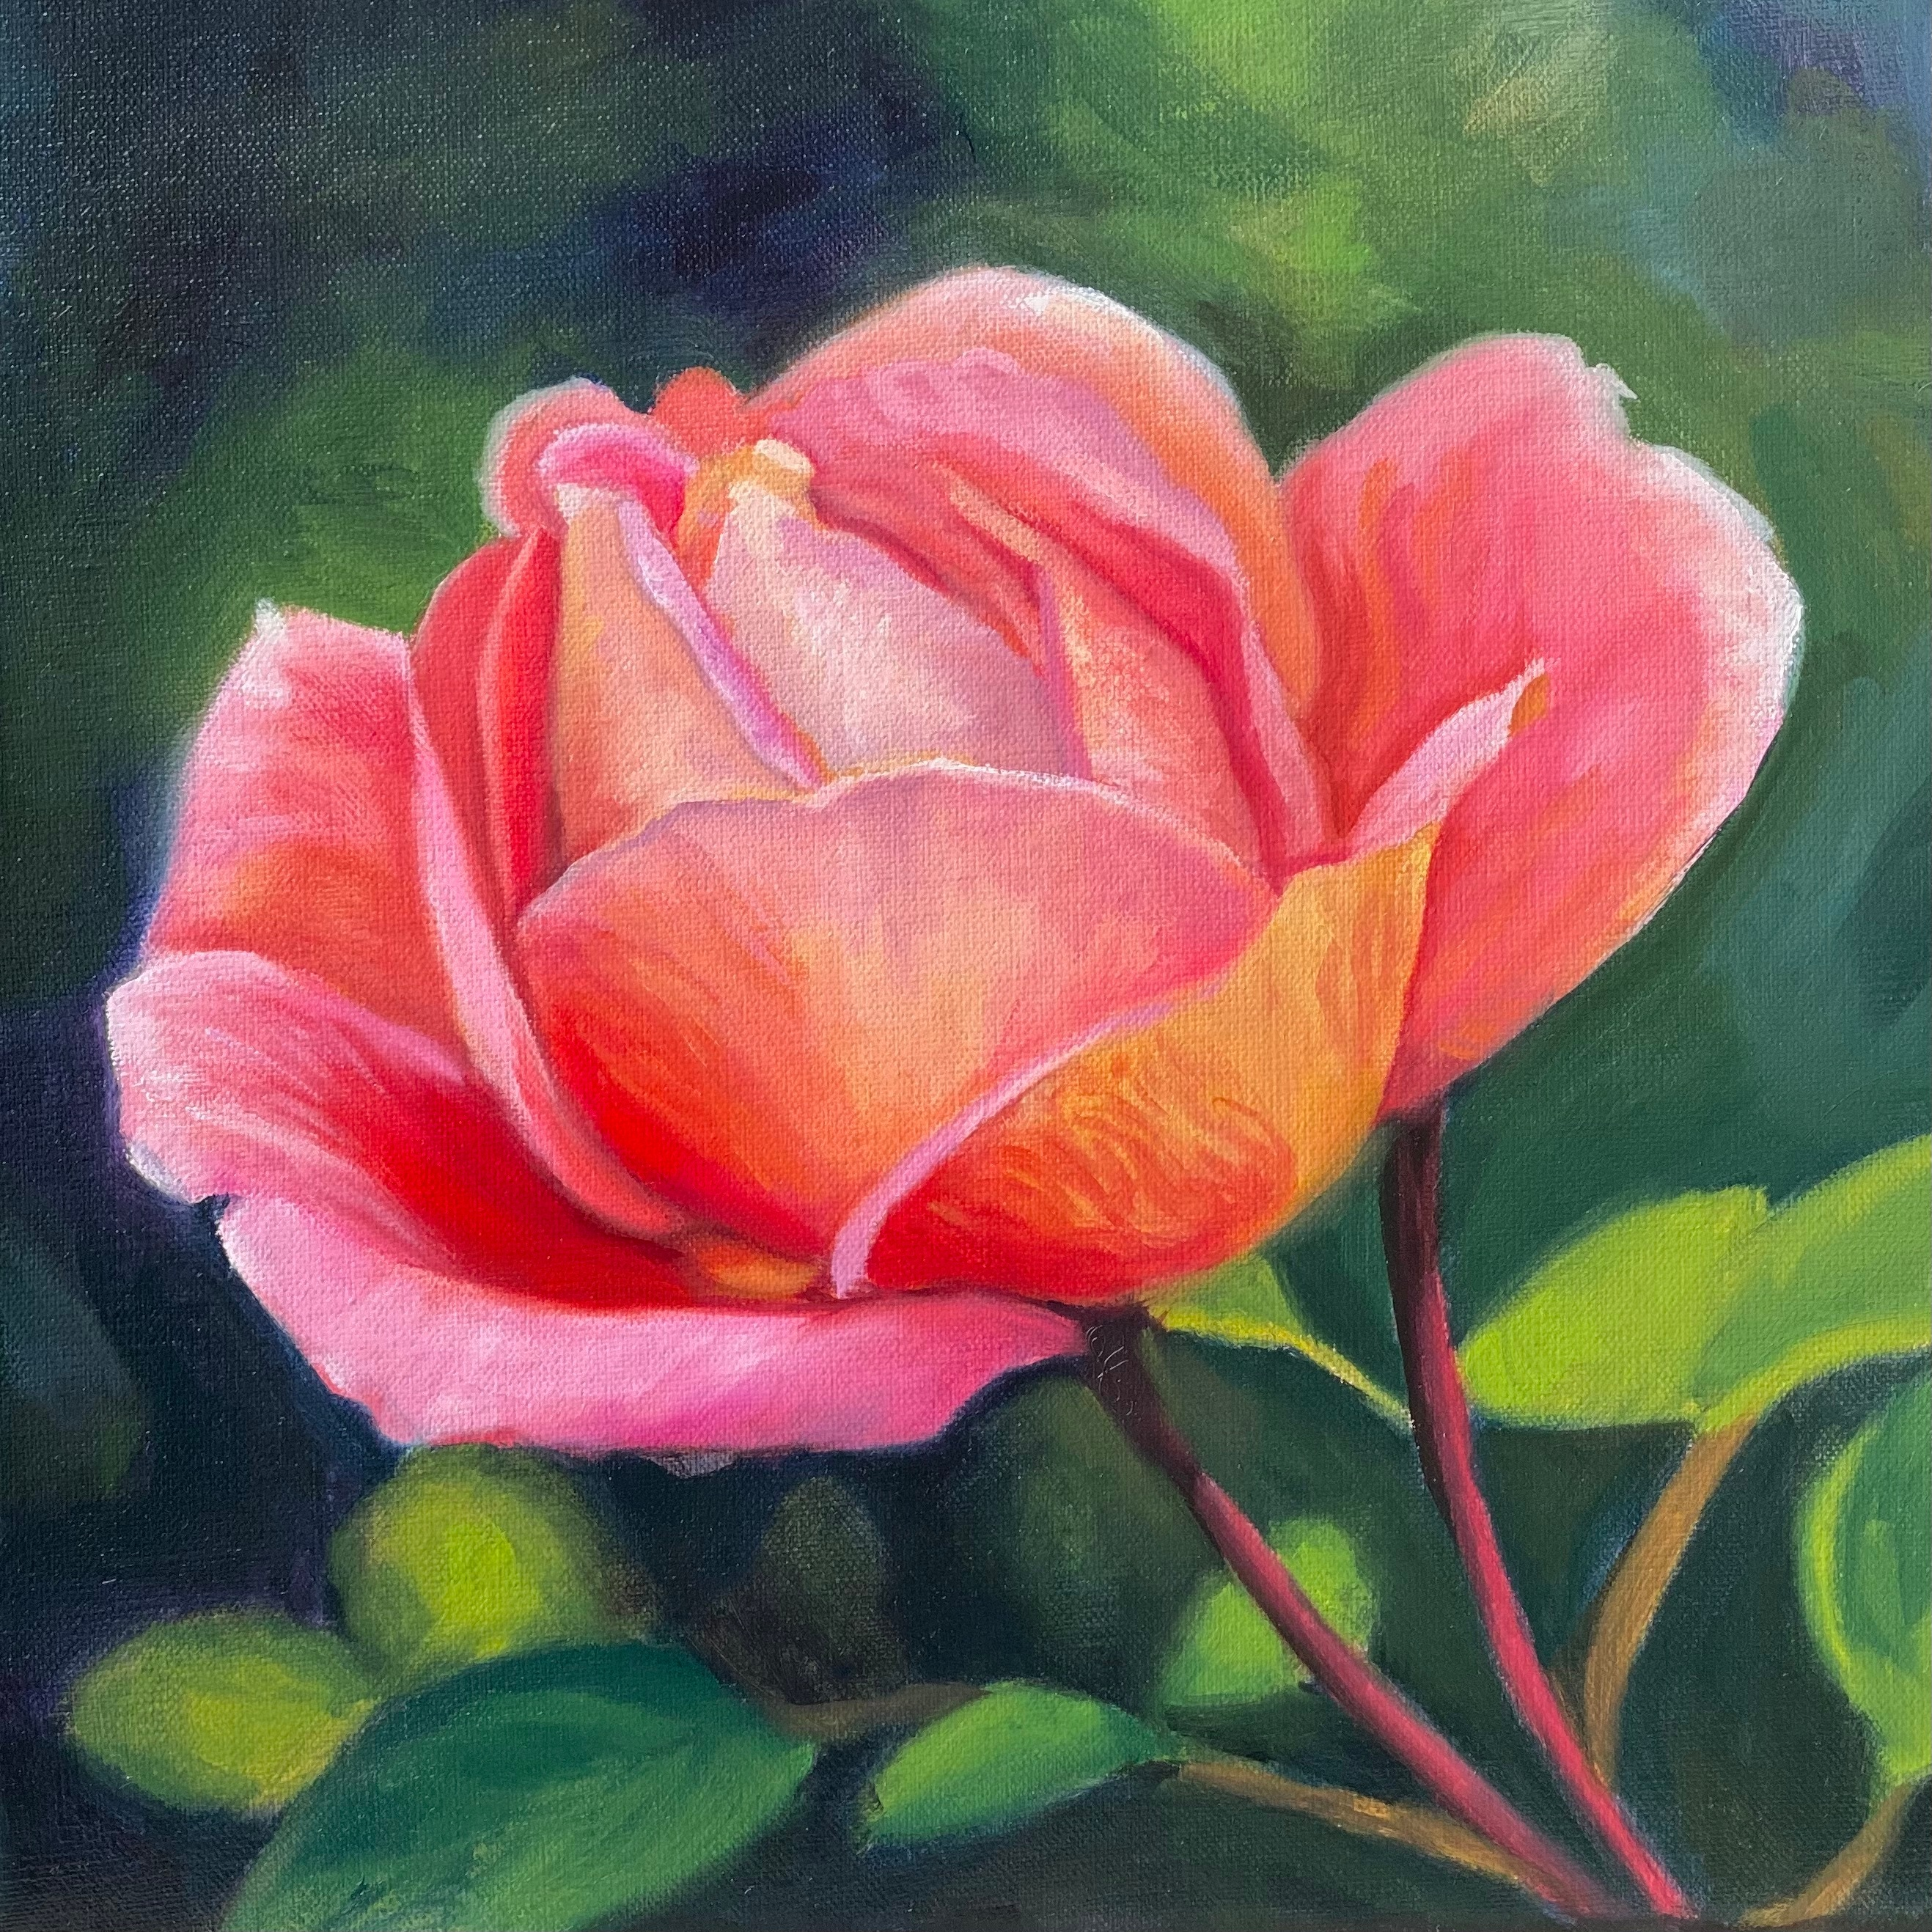 Pink peace rose 10x10 tkrimo